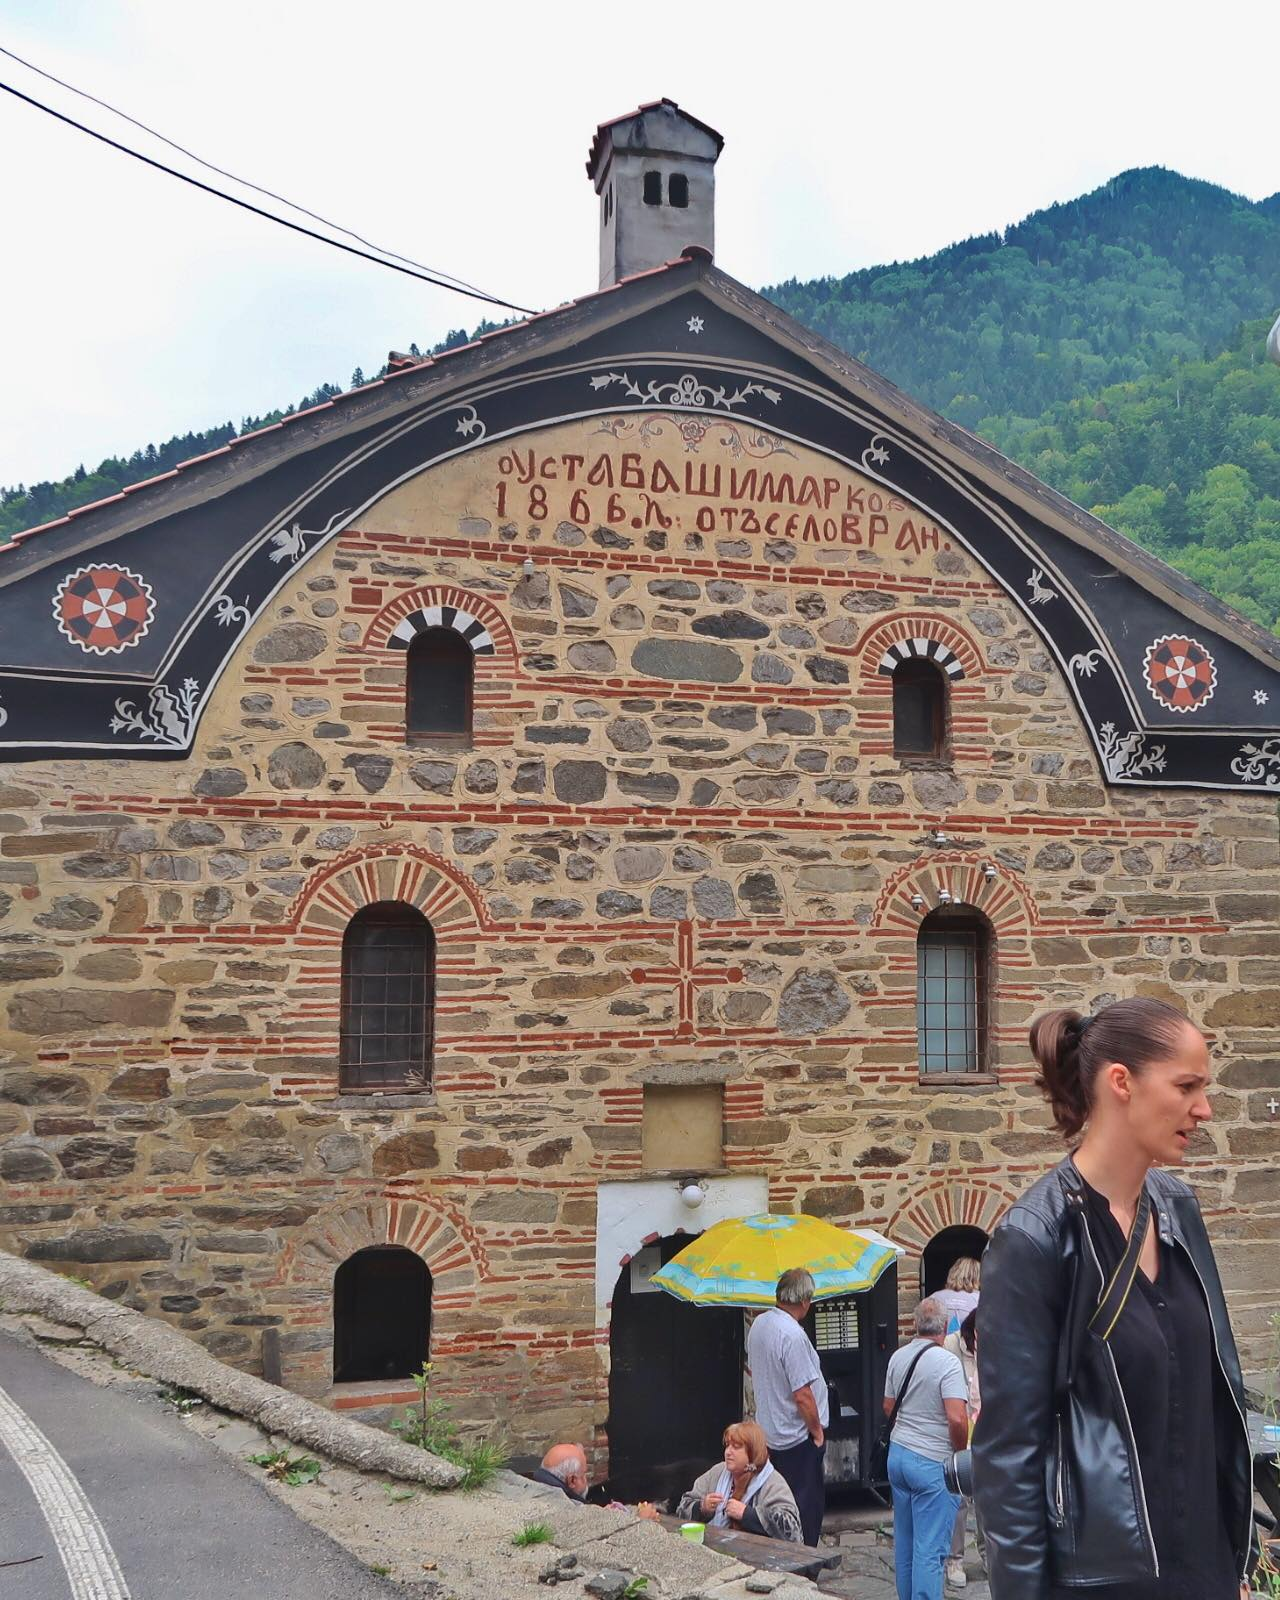 Meet up with a blog reader and a Roadtrip to RILA MONASTERY in Bulgaria